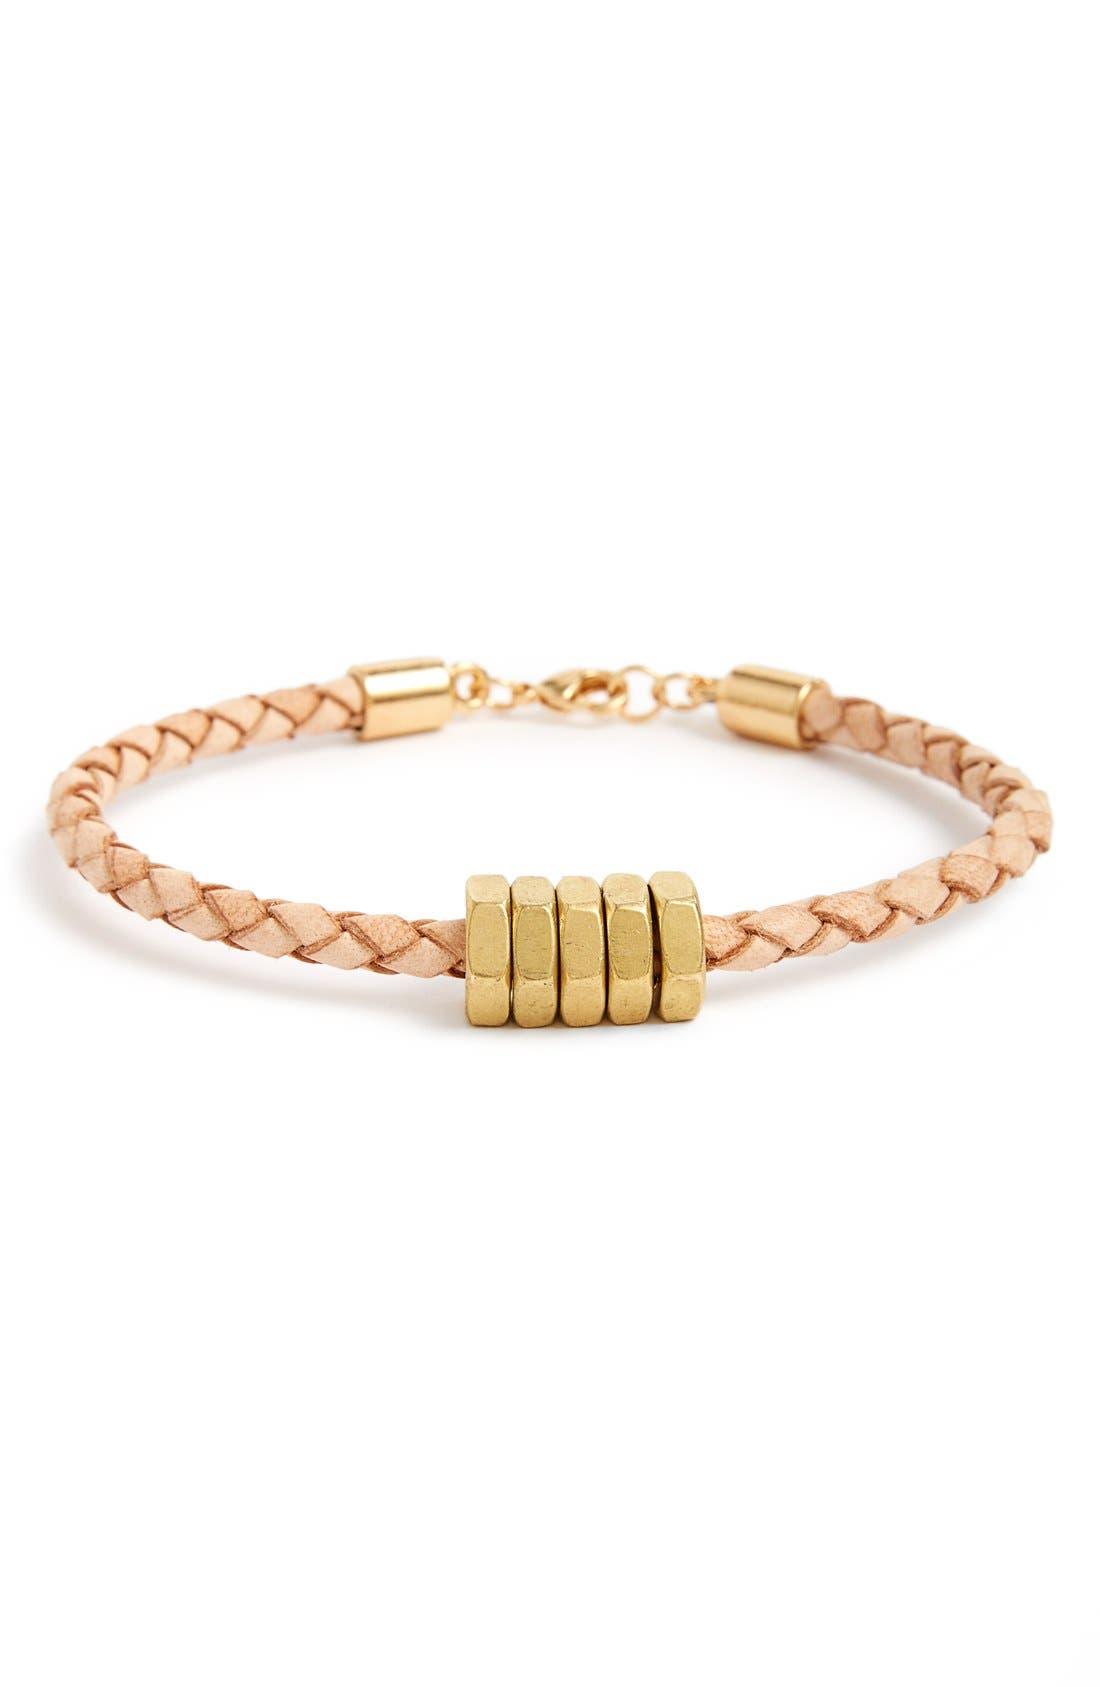 HALF UNITED Honeybee Braided Leather Bracelet